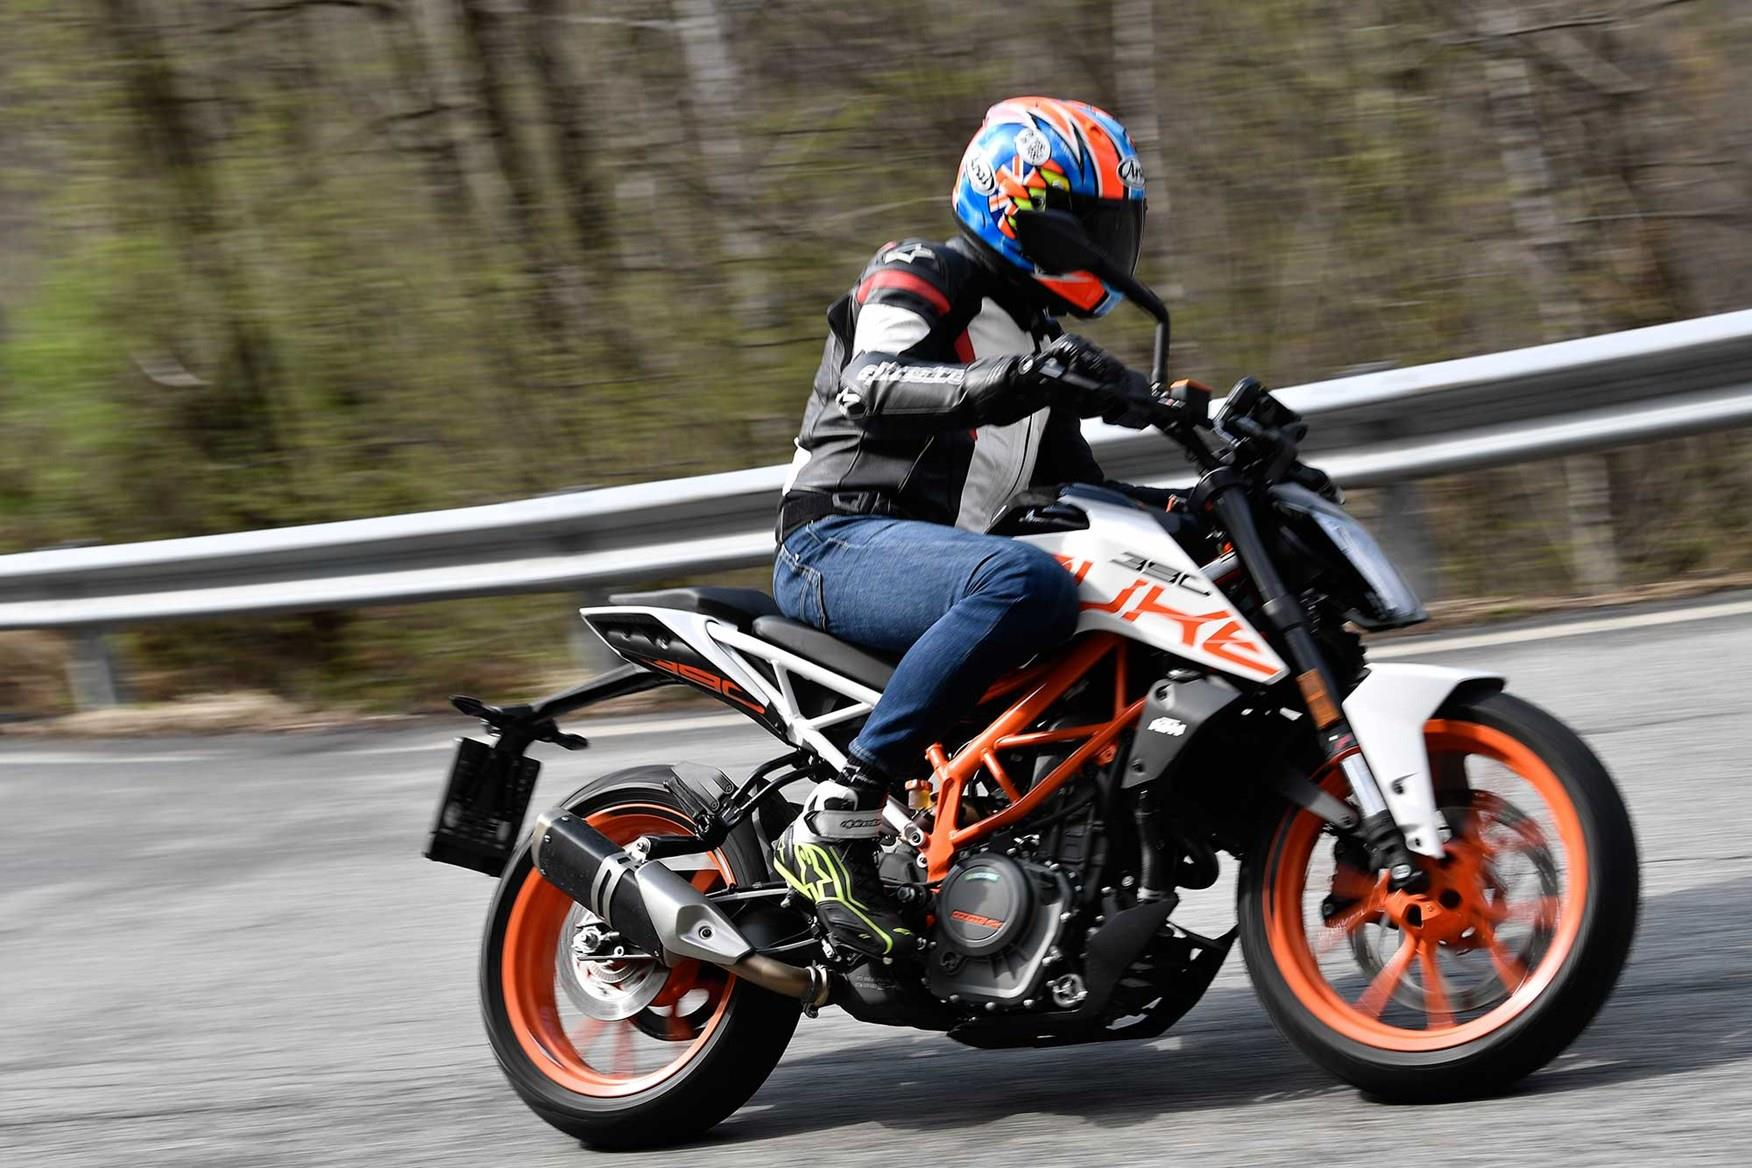 A2-compliant KTM motorcycle